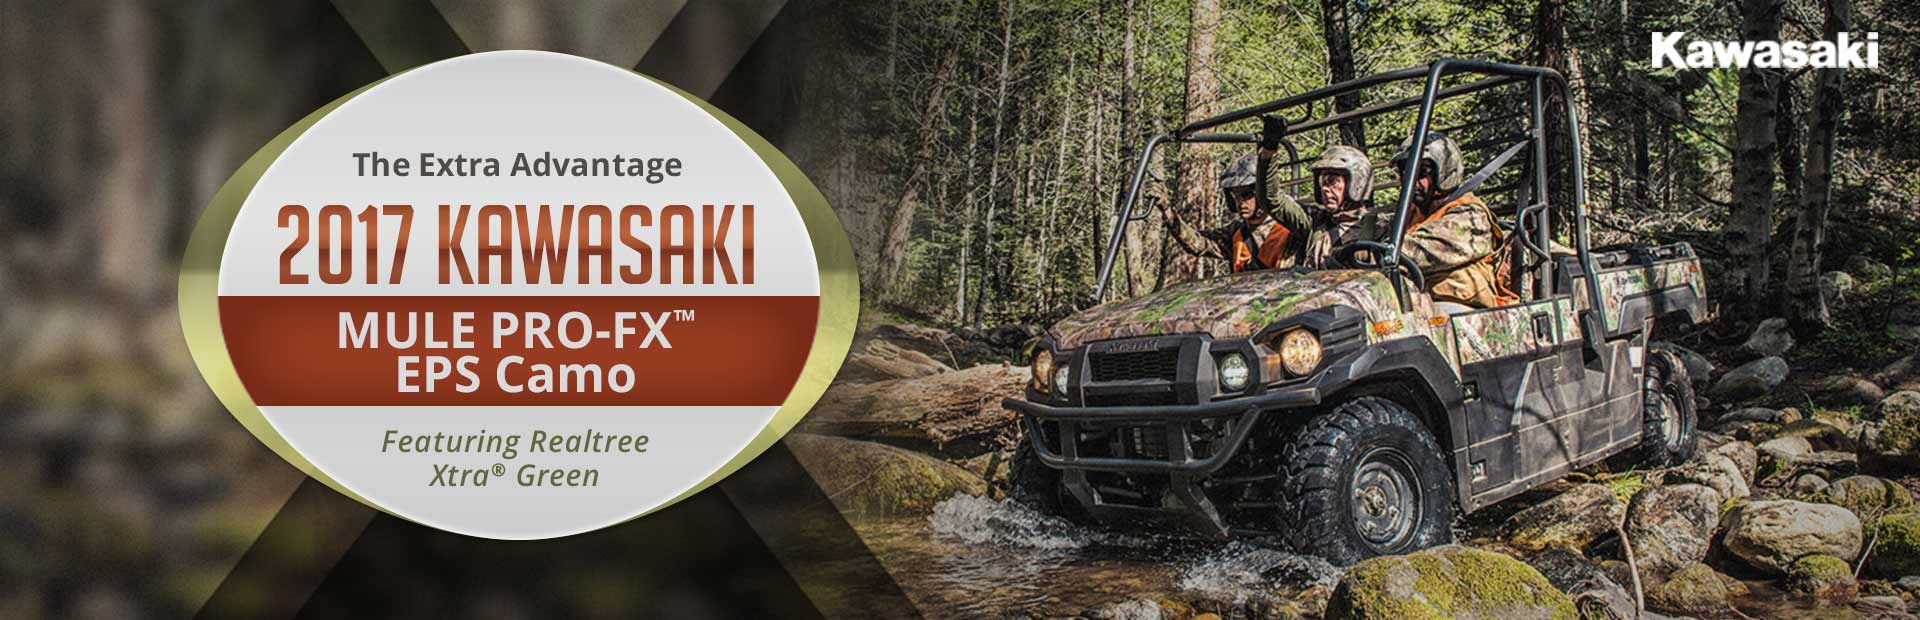 2017 Kawasaki MULE PRO-FX™ EPS Camo Featuring Realtree Xtra® Green: Click for details.